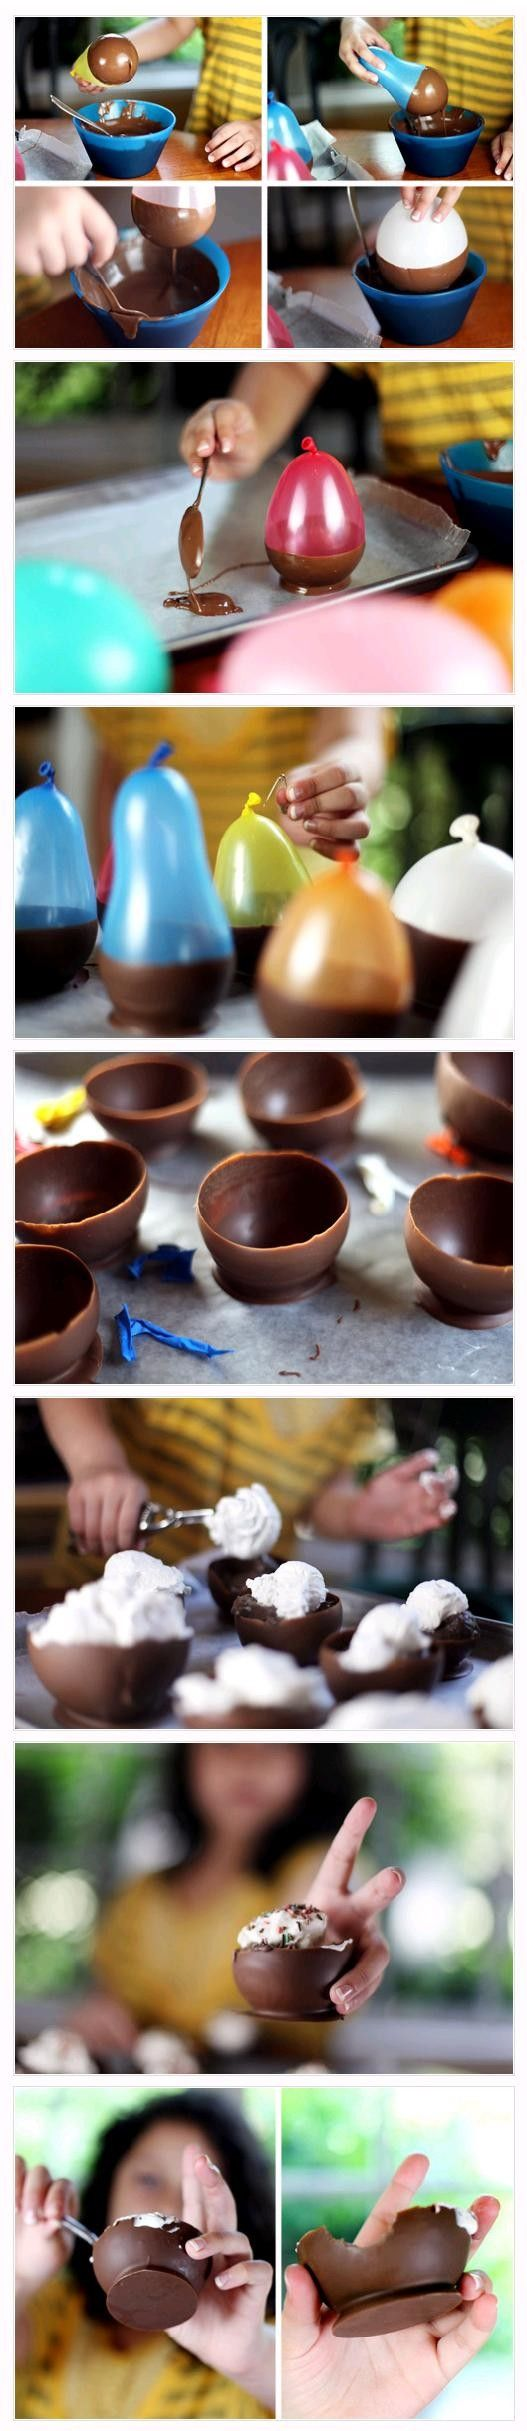 Make your own chocolate ice cream bowls